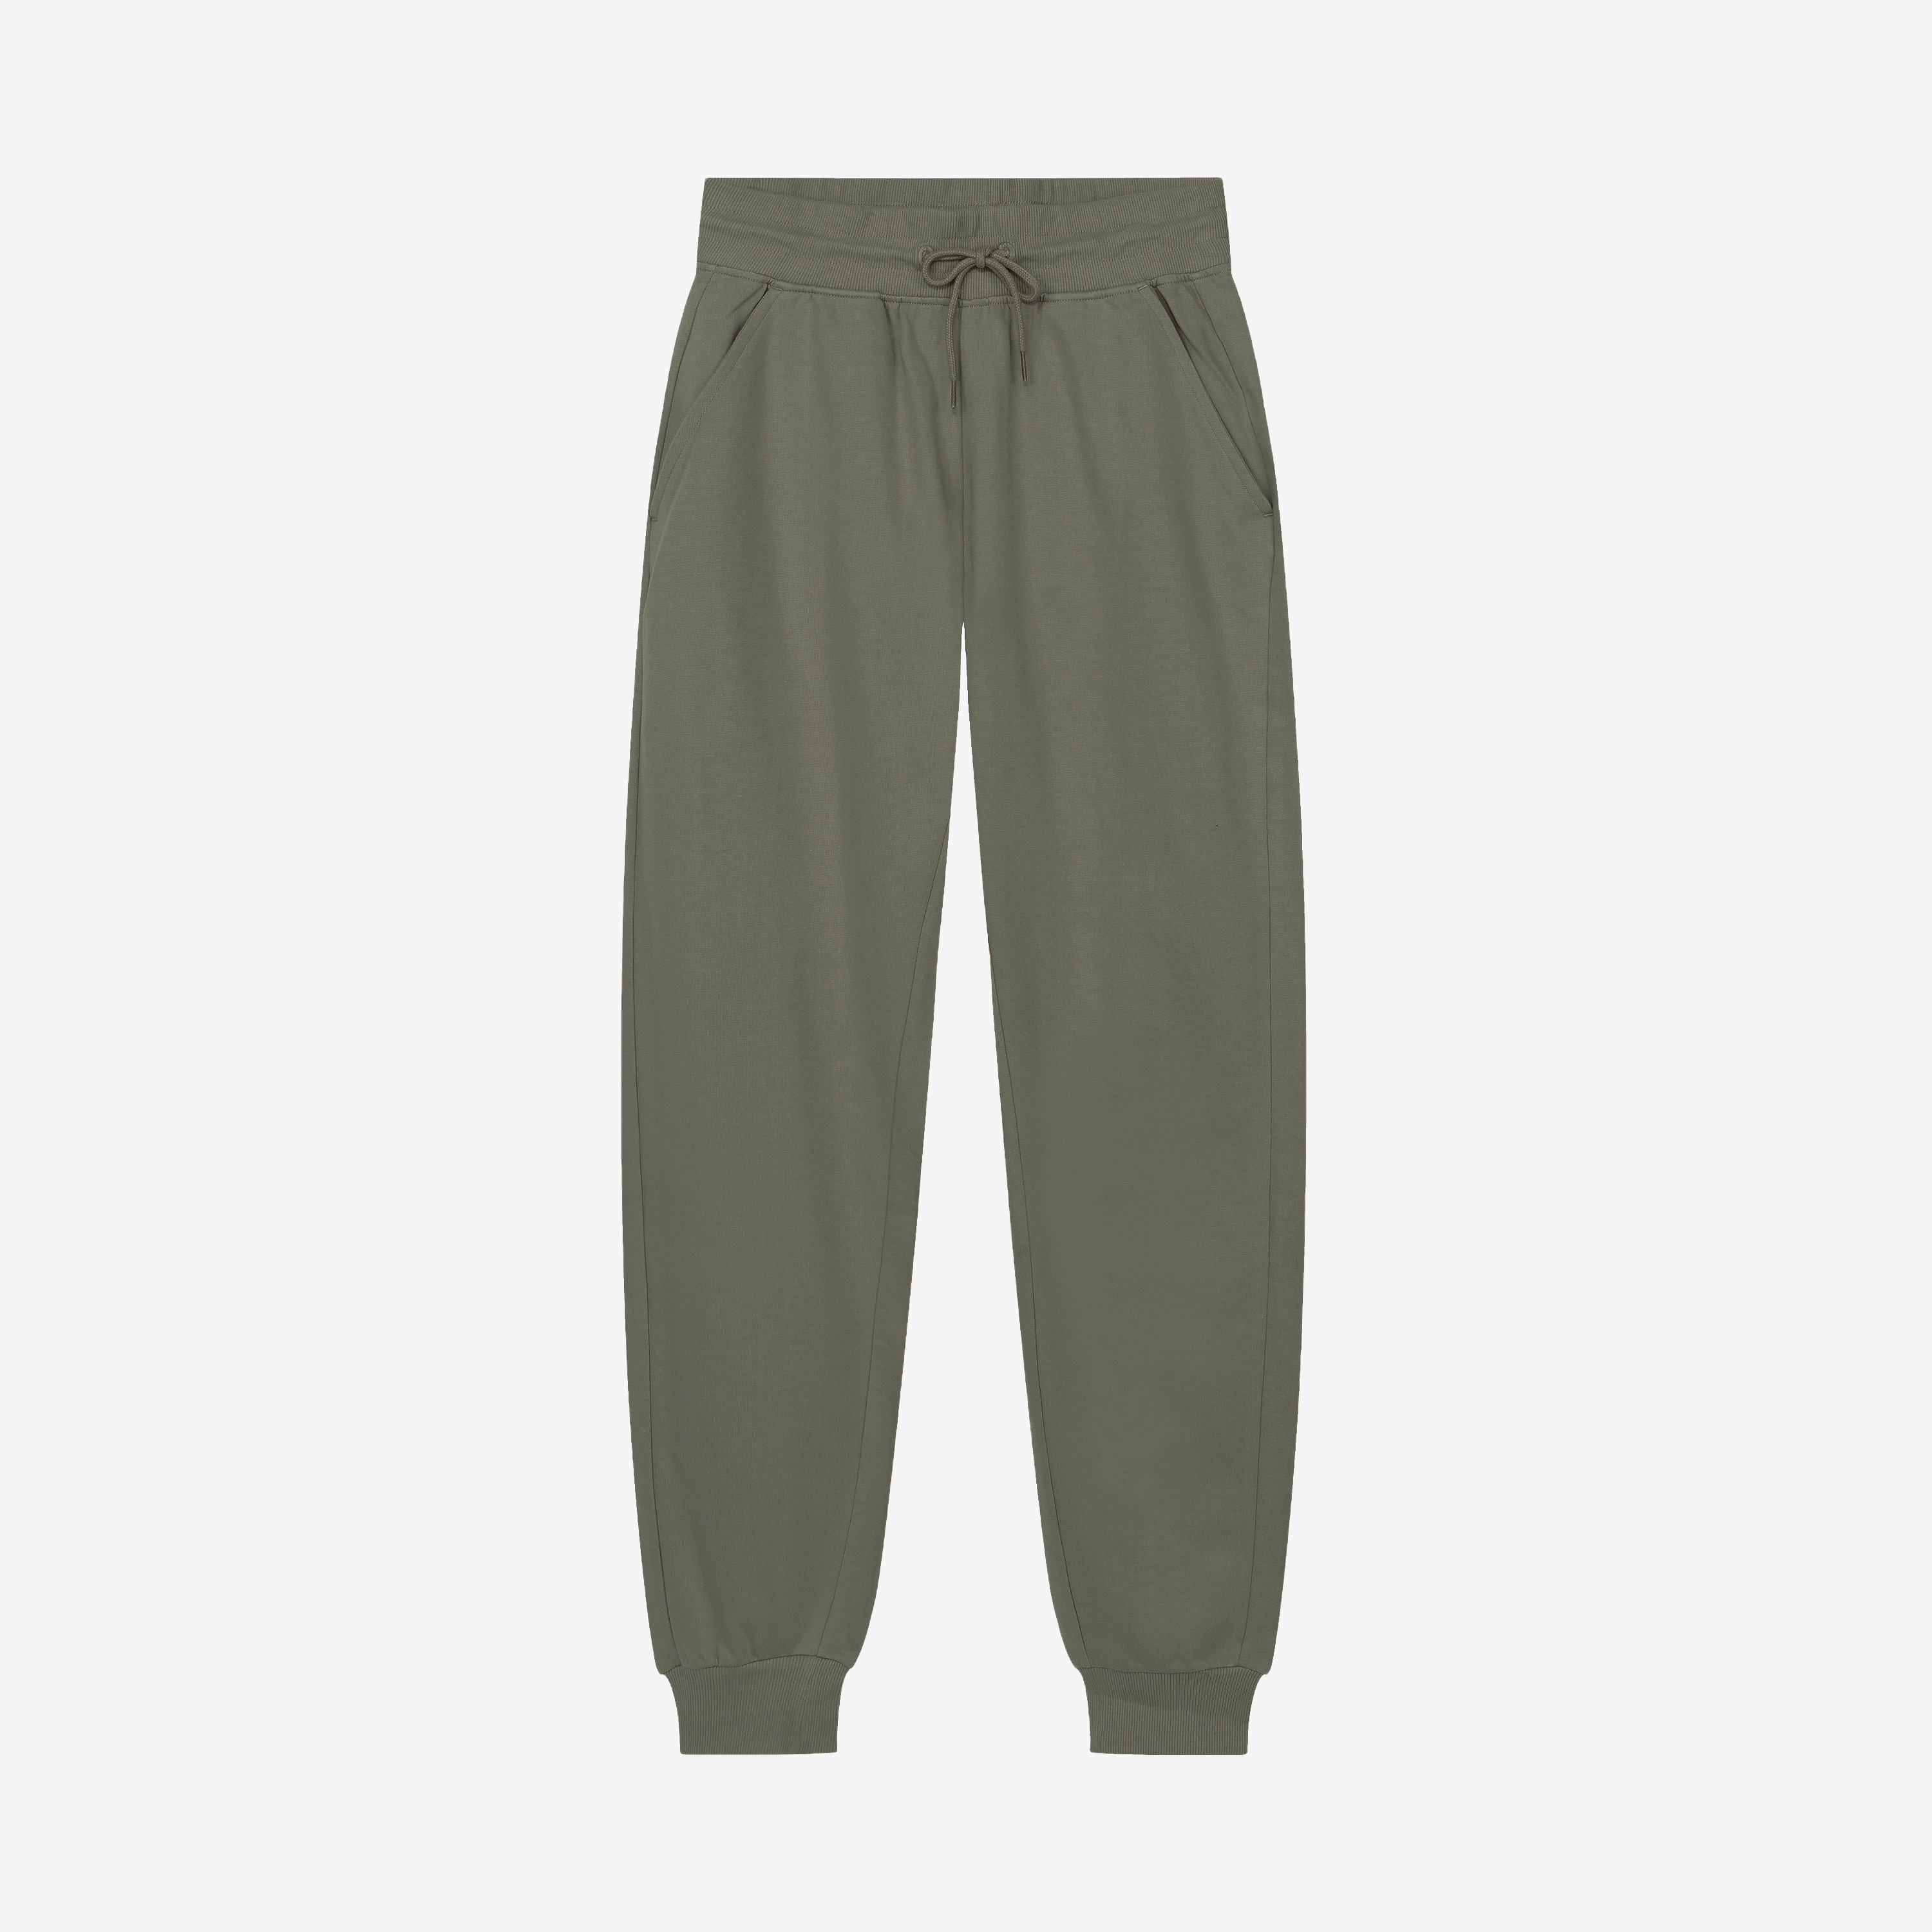 637-40_Lounge-Pant_olive-green_CO-A